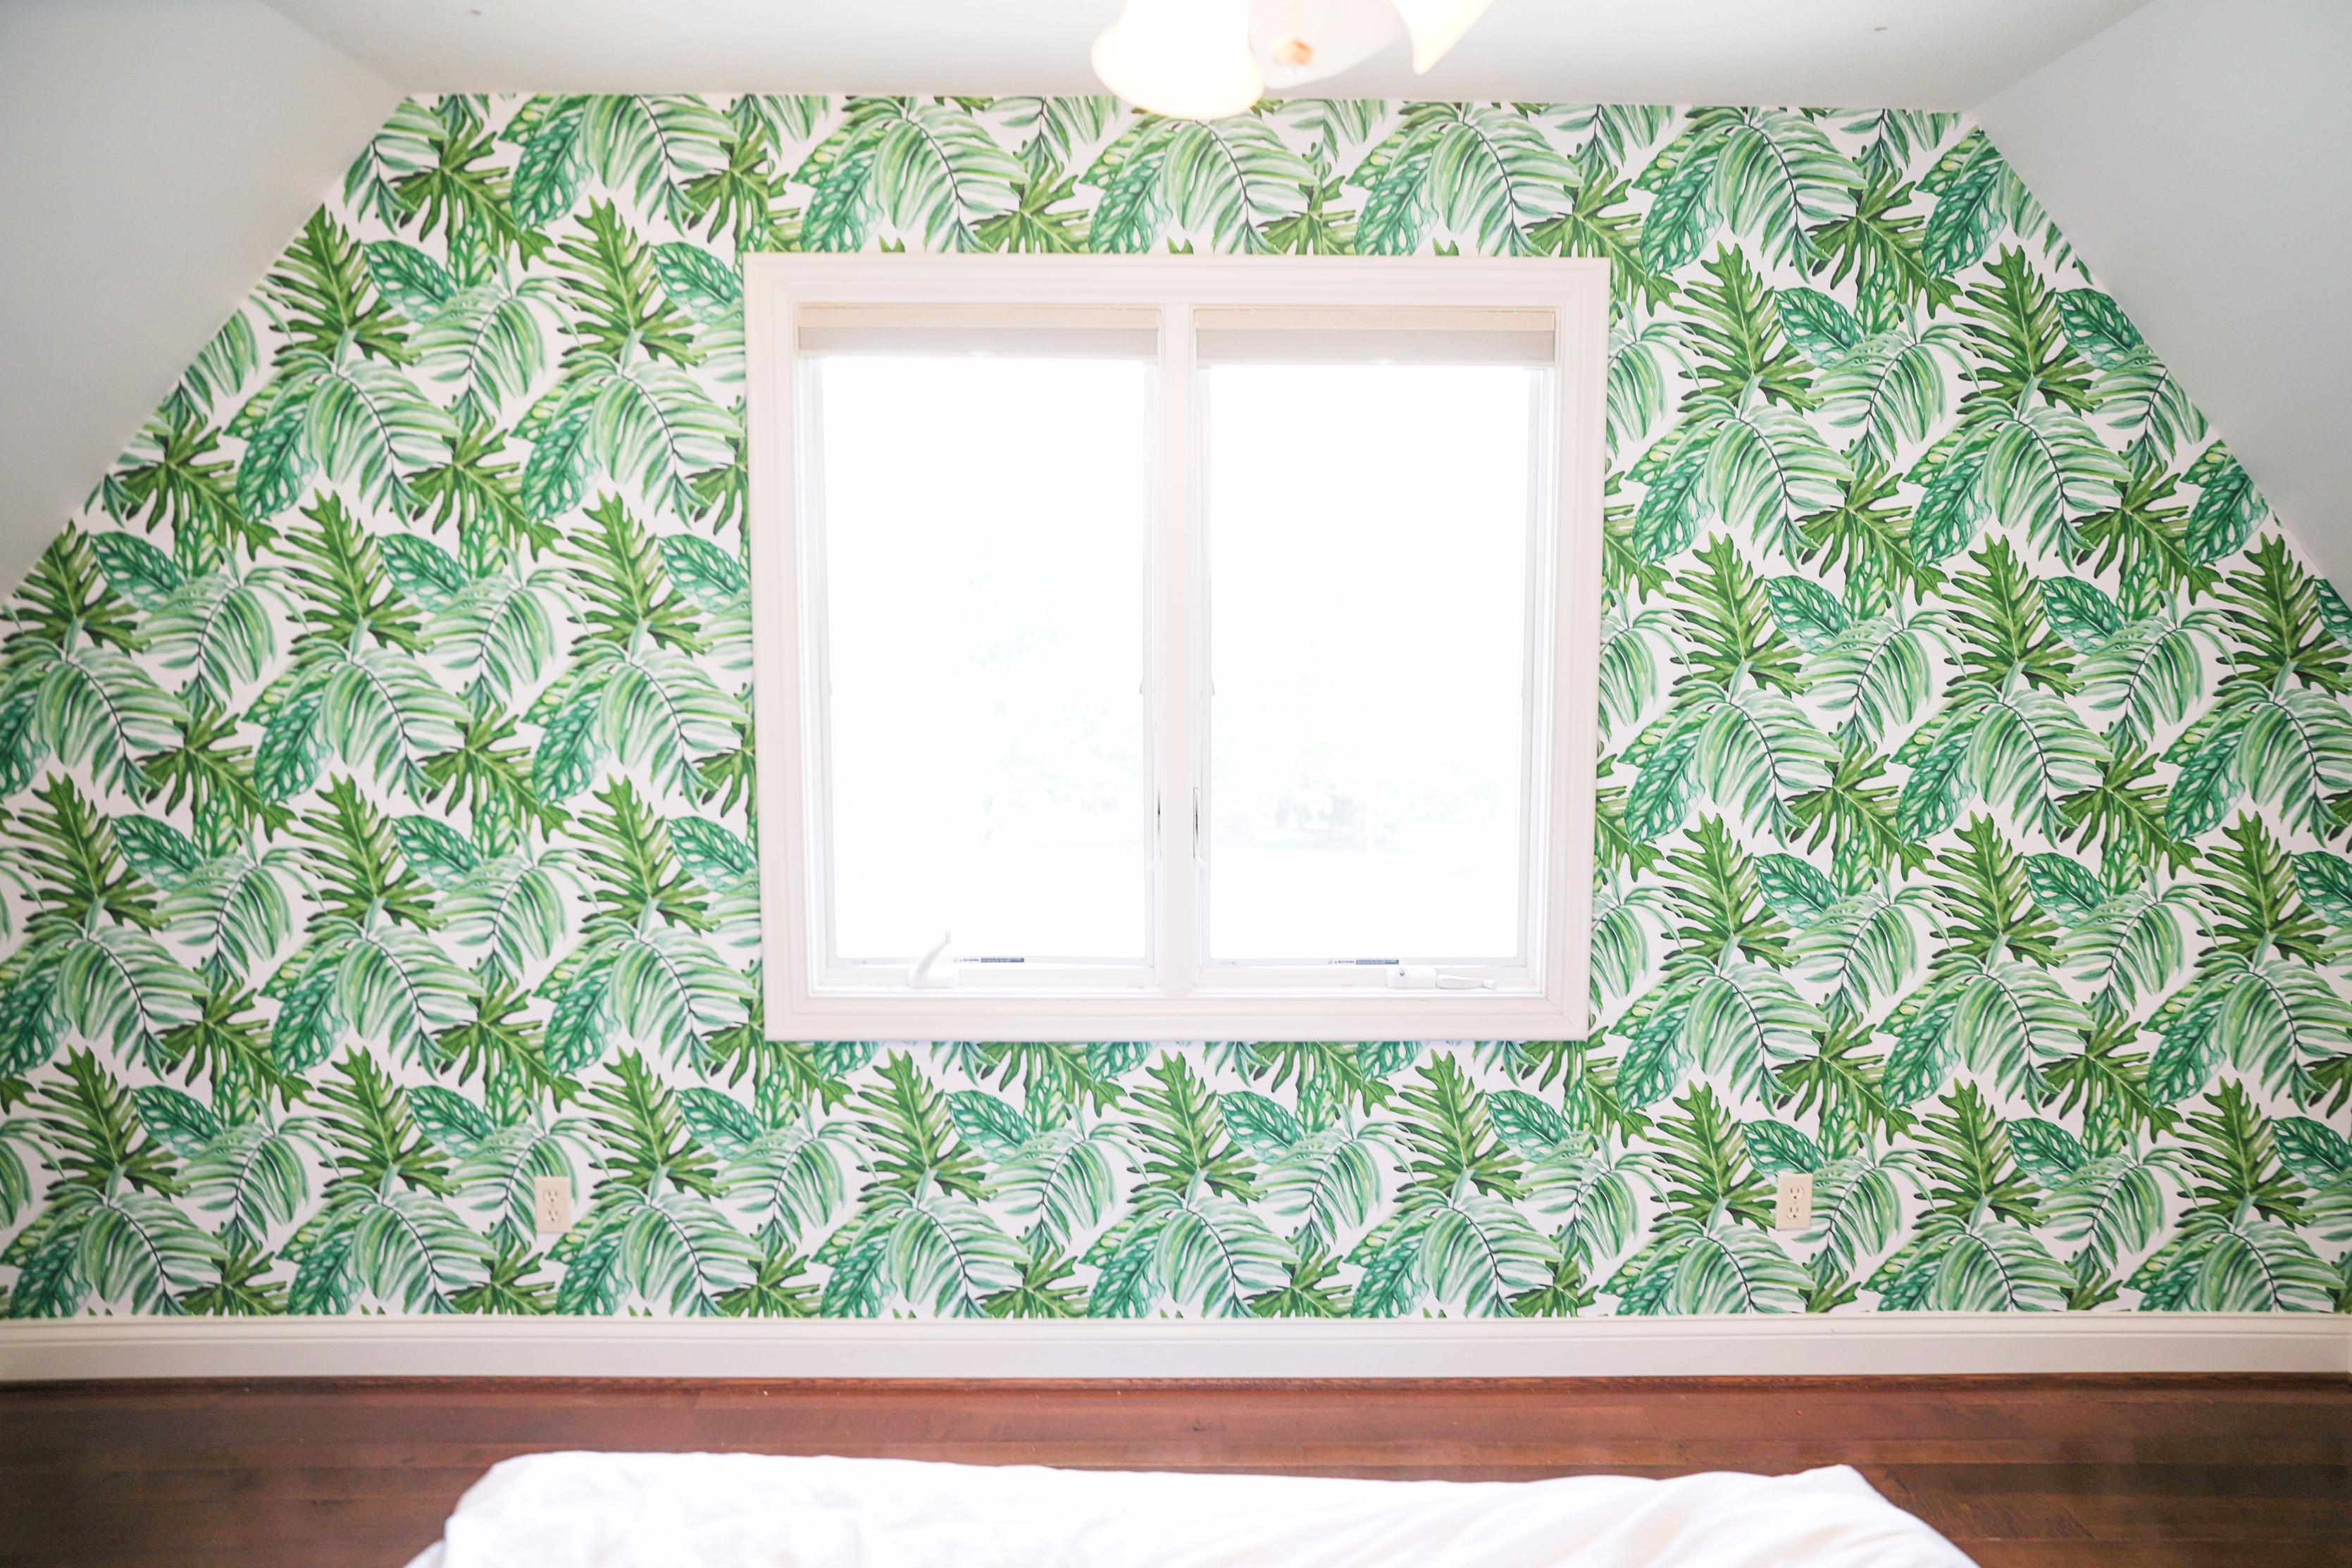 Palm Leaf Wallpaper as a statement wall. Cute palm leaf, tropical decor. Temporary and easy to put up and remove, on the blog daily dose of charm by lauren lindmark